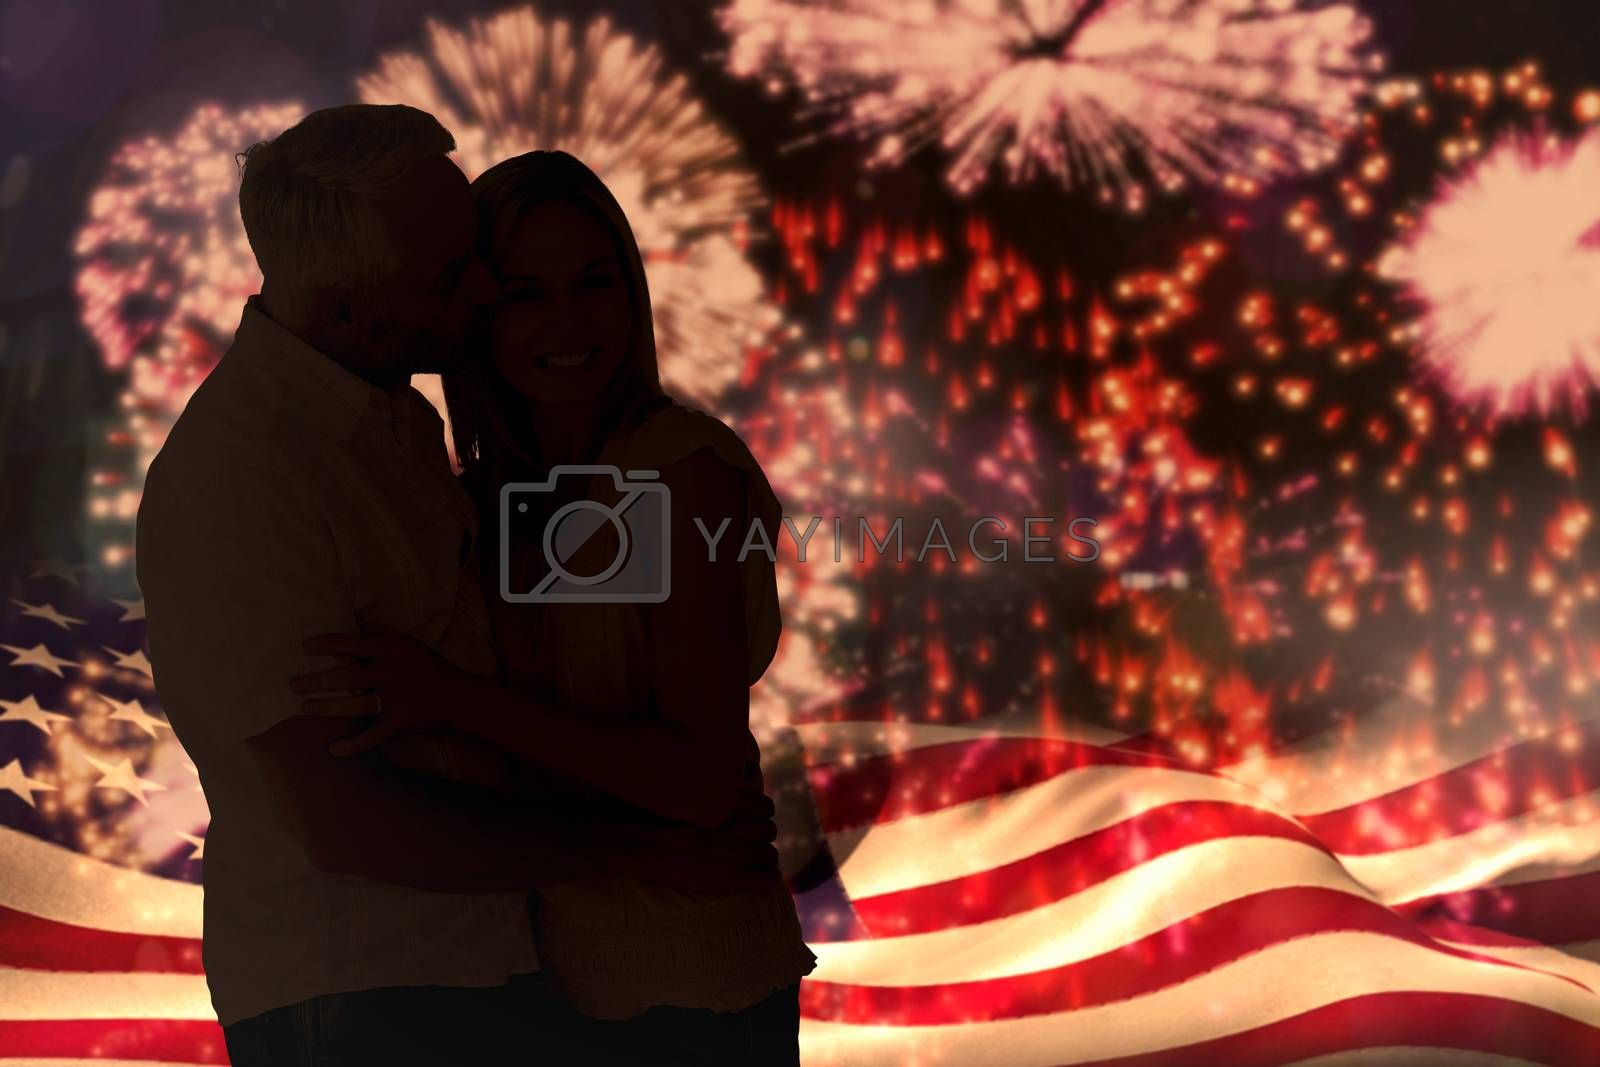 Affectionate man kissing his wife on the cheek against colourful fireworks exploding on black background